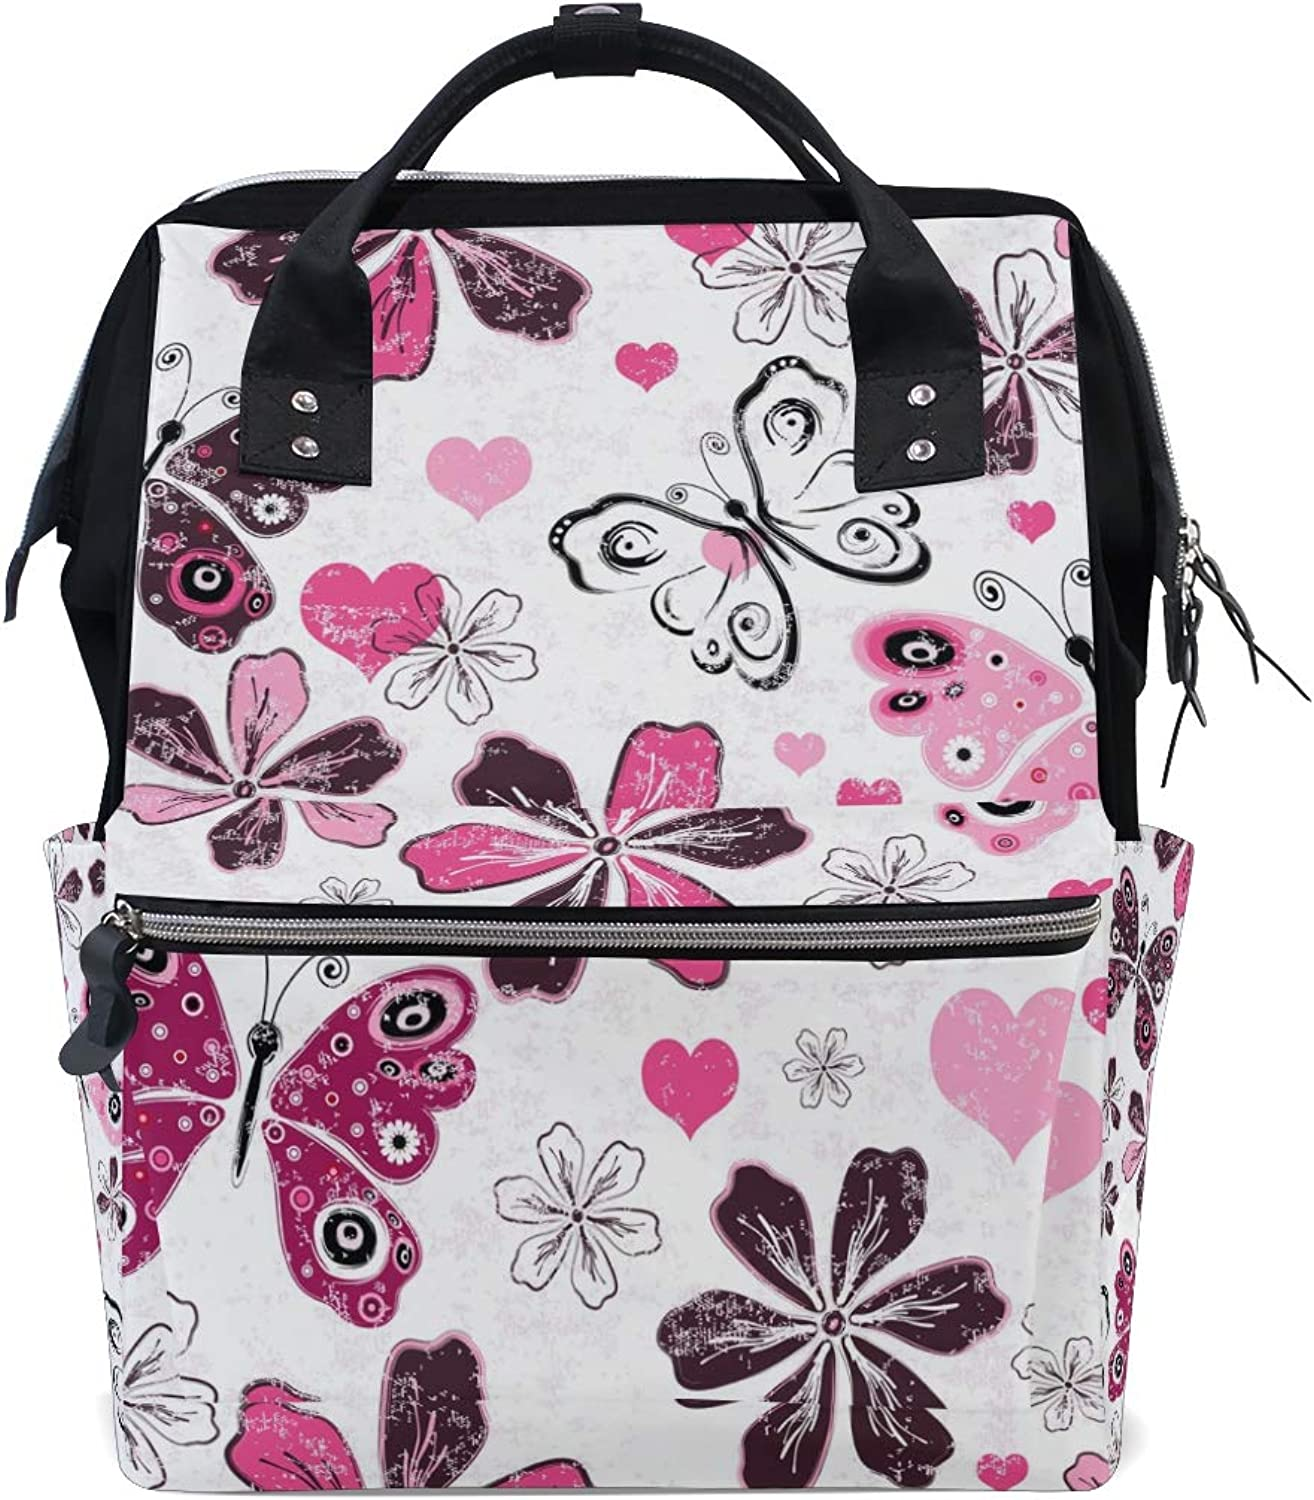 DEZIRO Canvas Cartoon Butterfly and Flower School Pack Backpacks Travel Bag